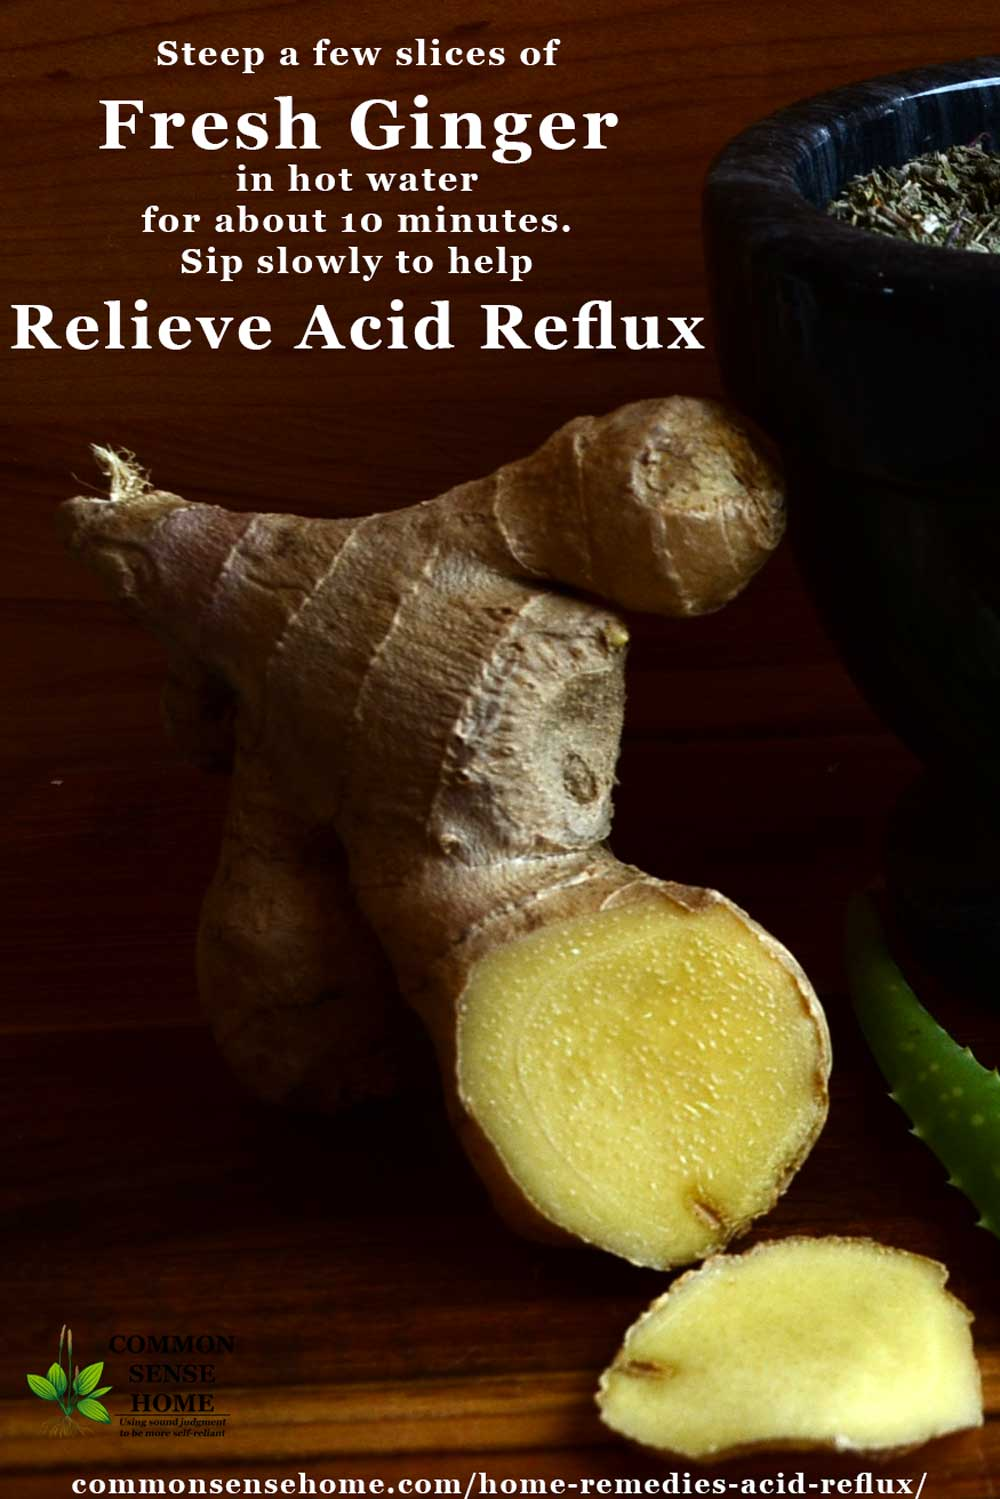 ginger for acid reflux reviews